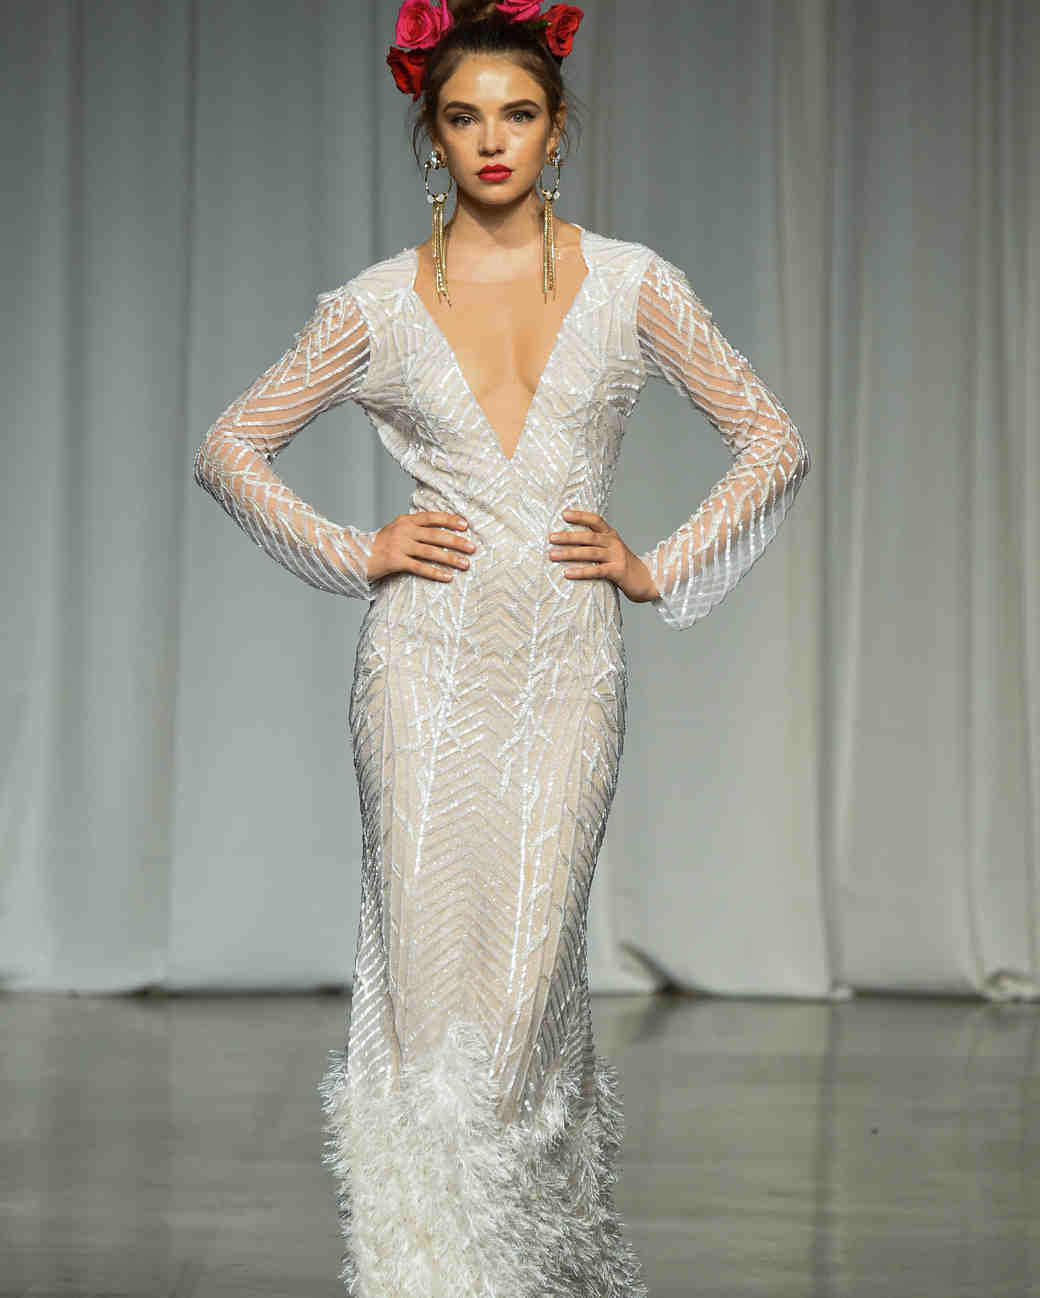 julie vino group fall 2019 sheath v-neck long sleeve wedding dress